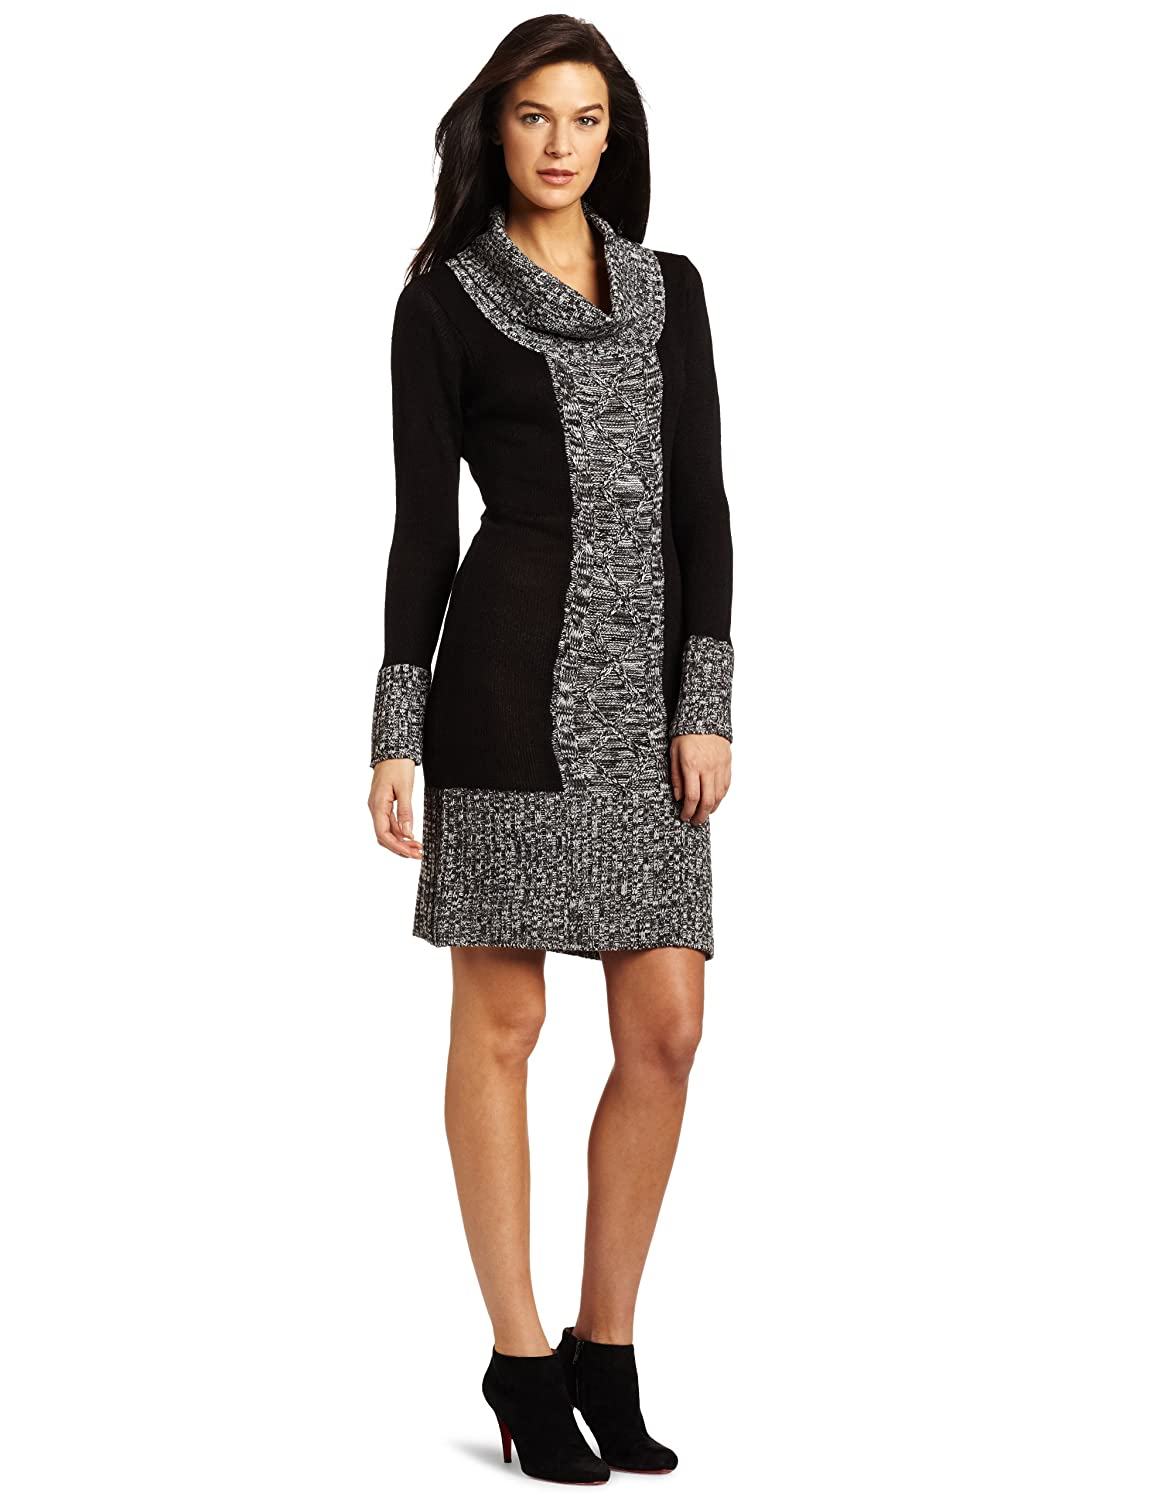 Sweater Dresses for Women If you're looking for the perfect fall dress or need an outfit for a holiday party at work or with the family, a sweater dress is a go-to staple. Grab a long sweater dress and pair with boots and a scarf for a cute fall outfit, or stick with a red, green or white sweater .